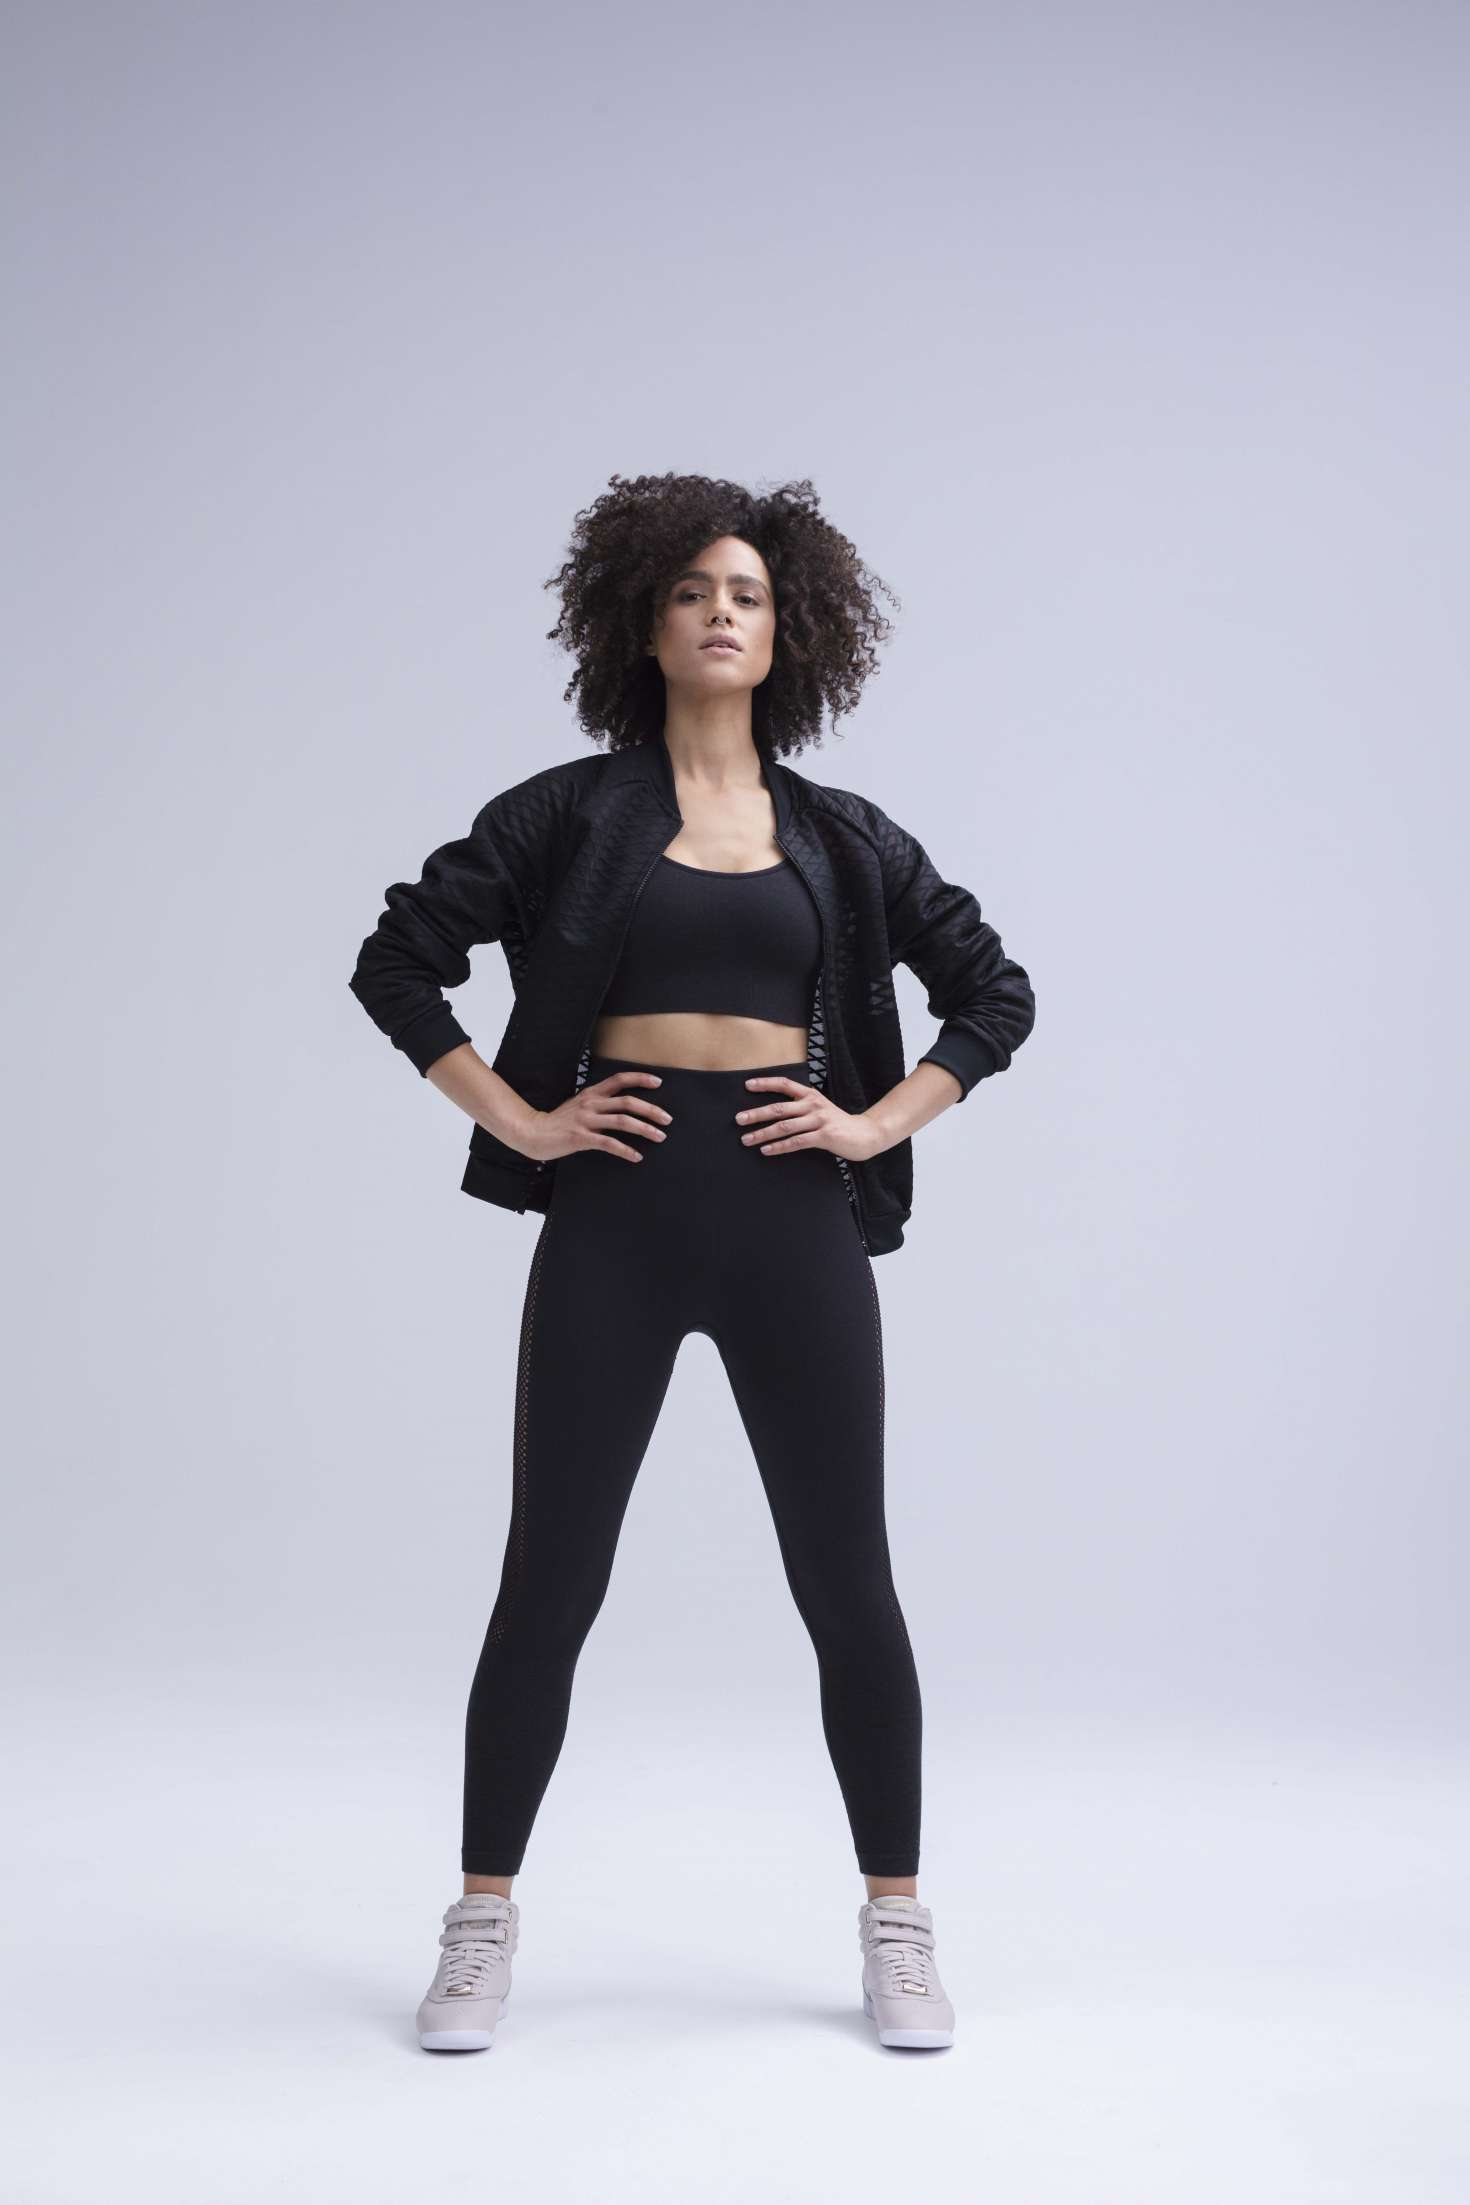 Nathalie Emmanuel for Reebok Womens Training Collection 2018